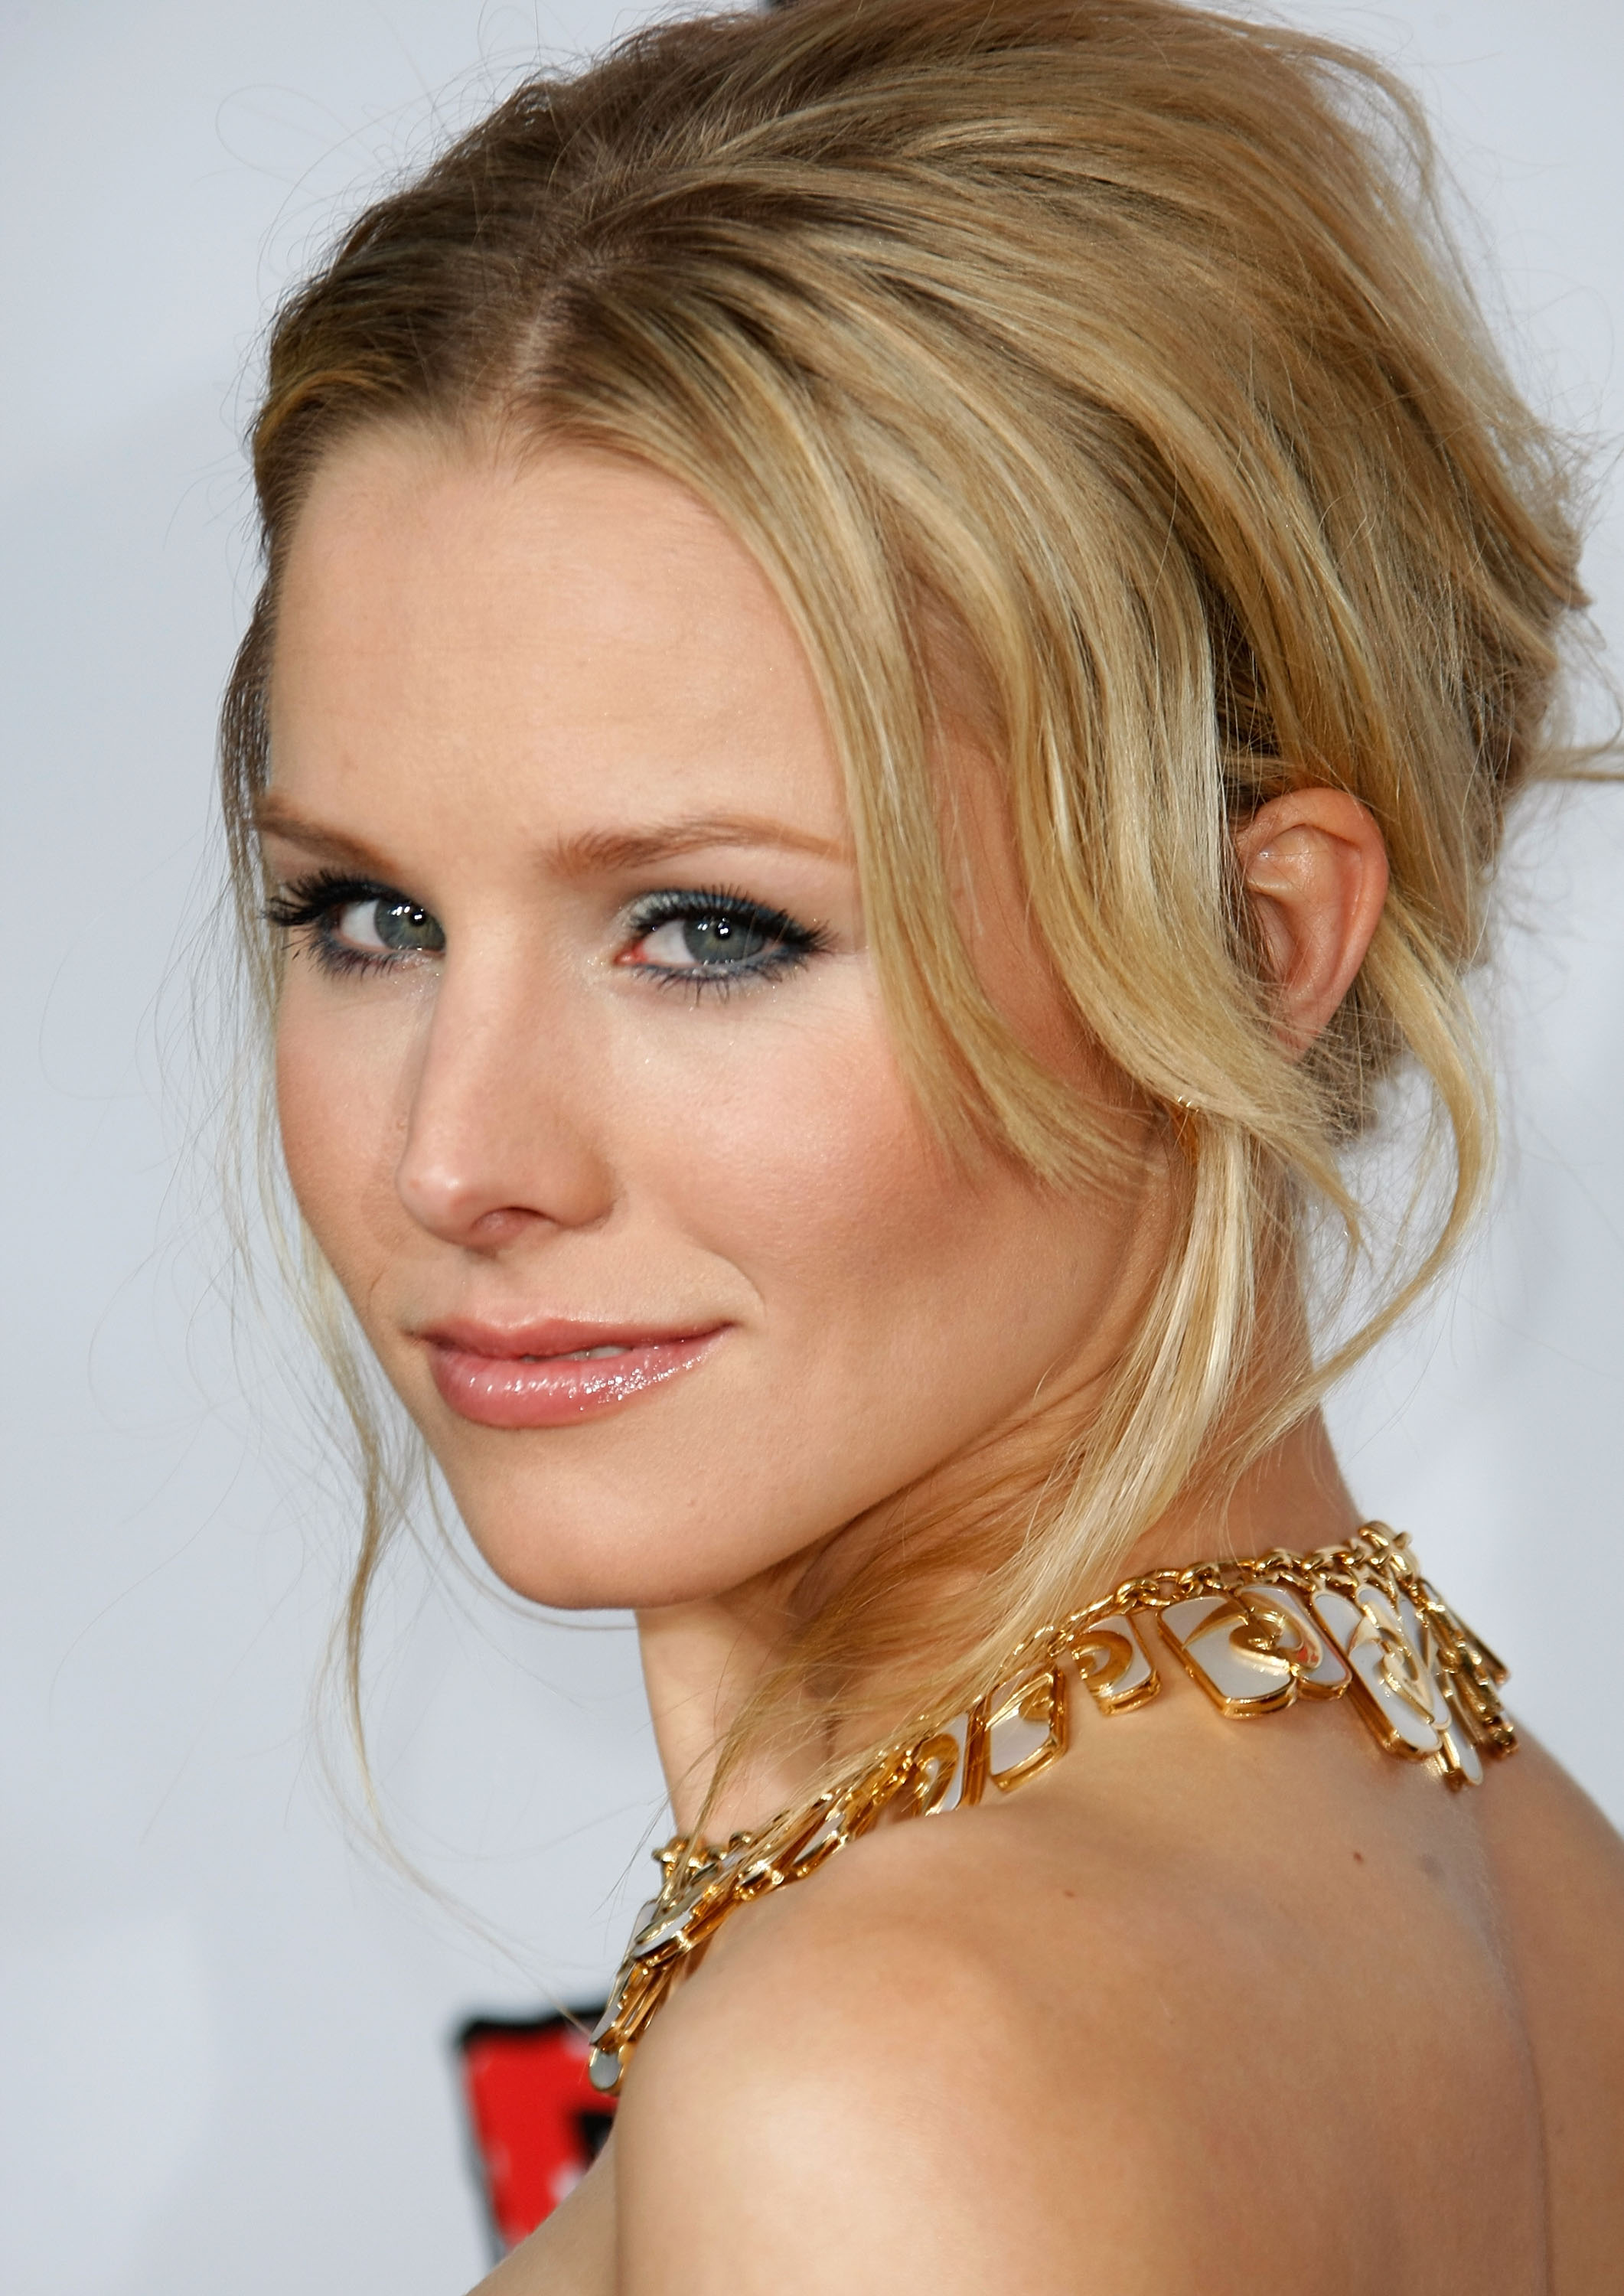 94989_Kristen_Bell-Forgetting_Sarah_Marshall_premiere_in_Hollywood_014_122_81lo.jpg